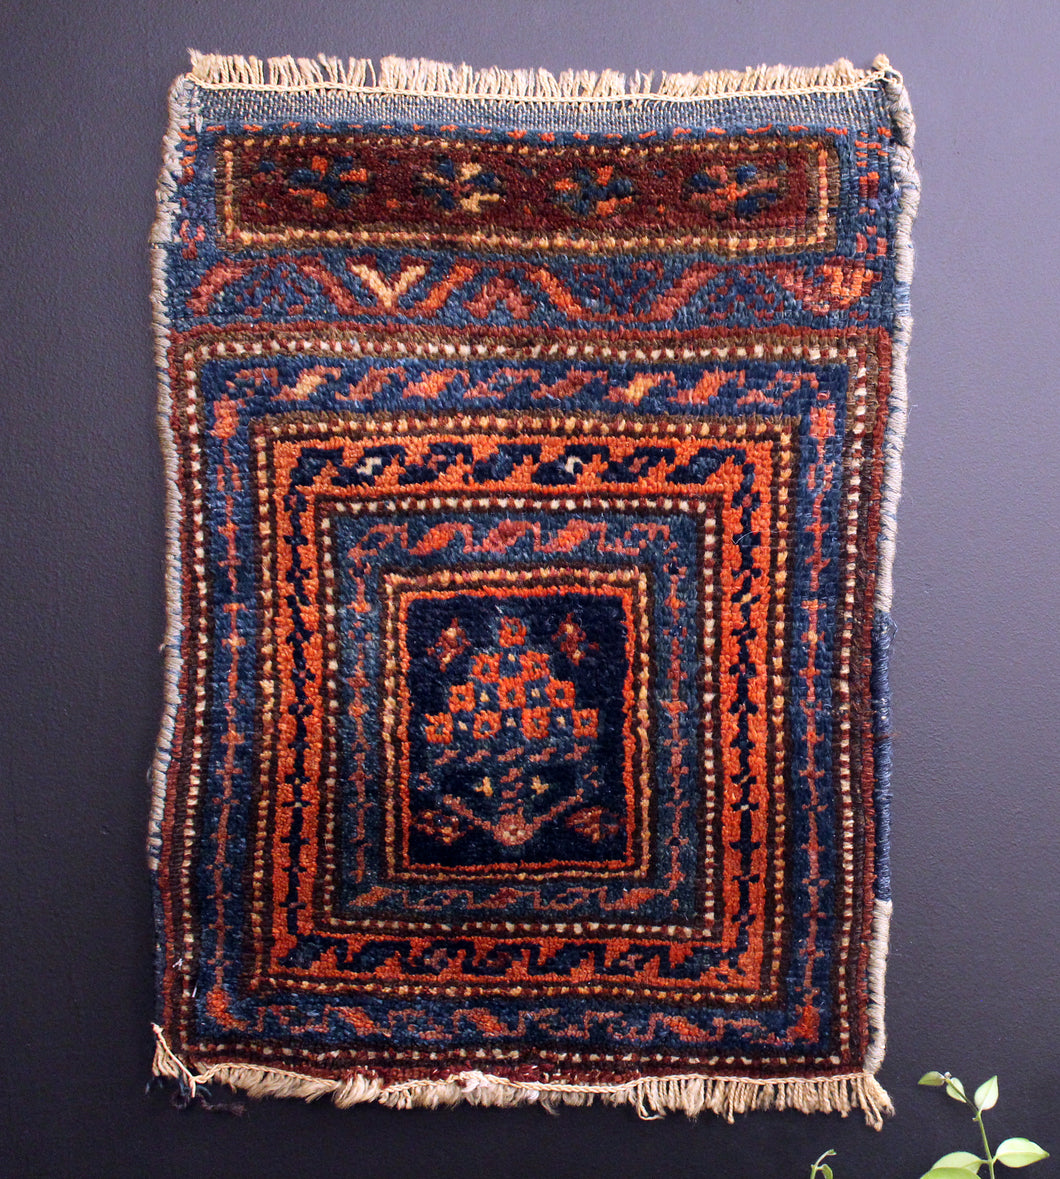 Small Kurdish rug with concentric borders that frame a bouquet of stylized flowers. Blues, oranges and reds.